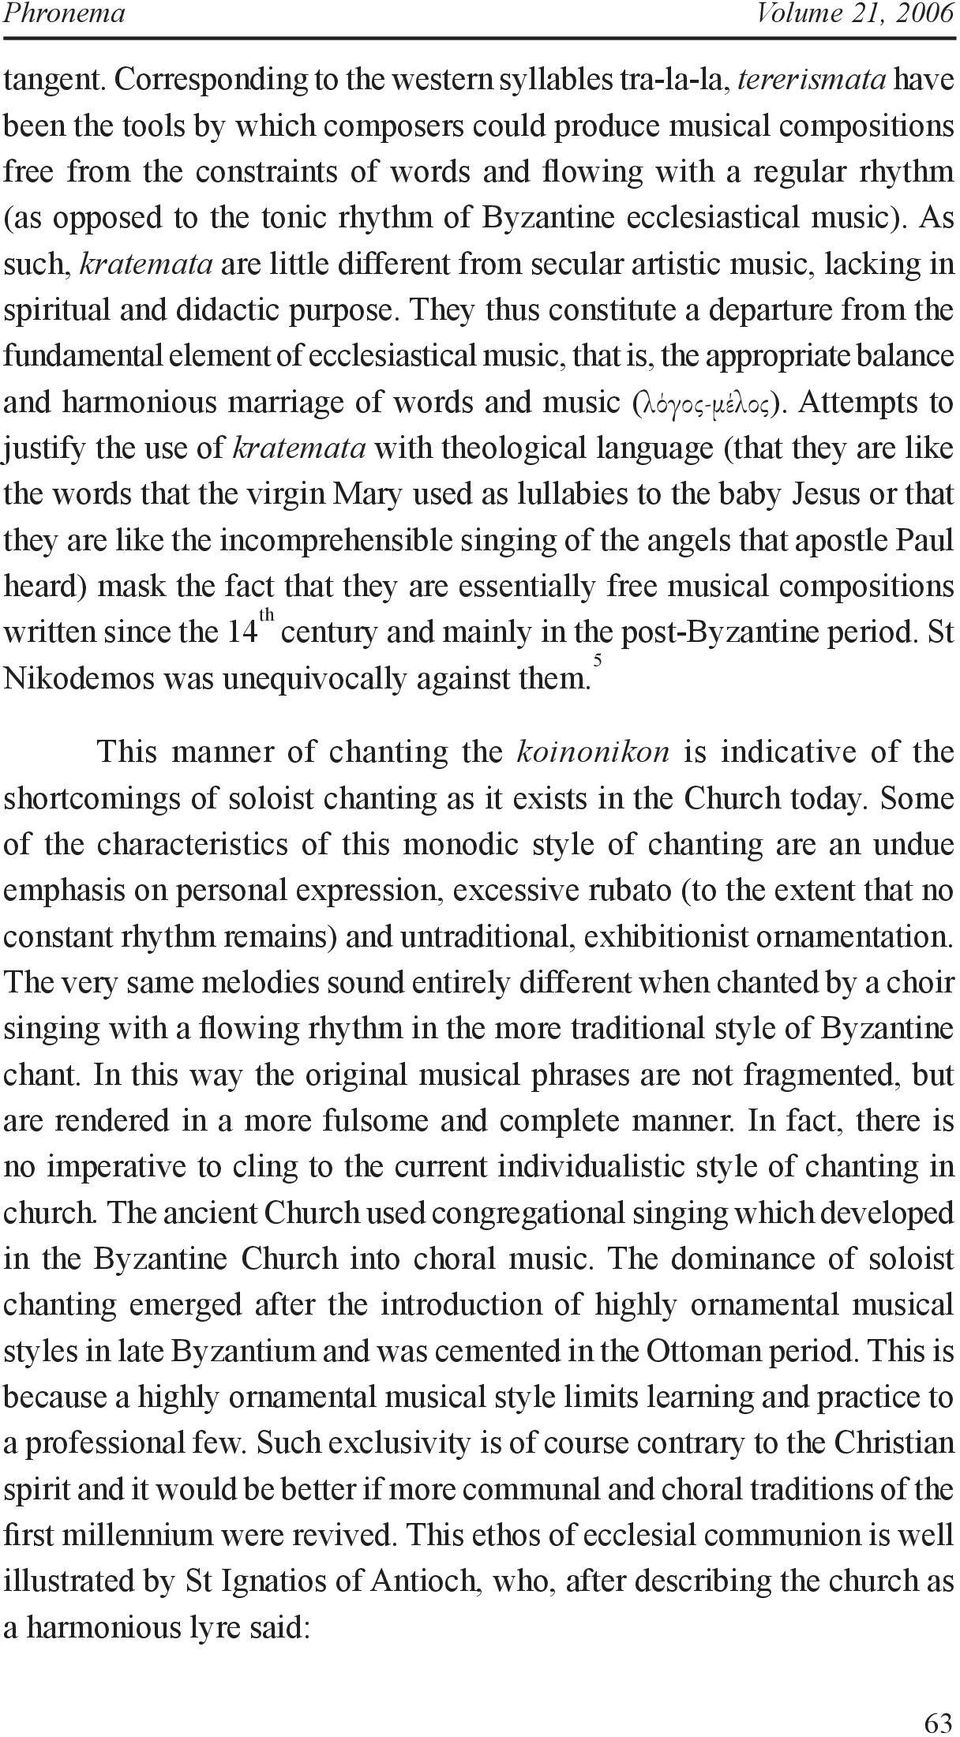 rhythm (as opposed to the tonic rhythm of Byzantine ecclesiastical music). As such, kratemata are little different from secular artistic music, lacking in spiritual and didactic purpose.